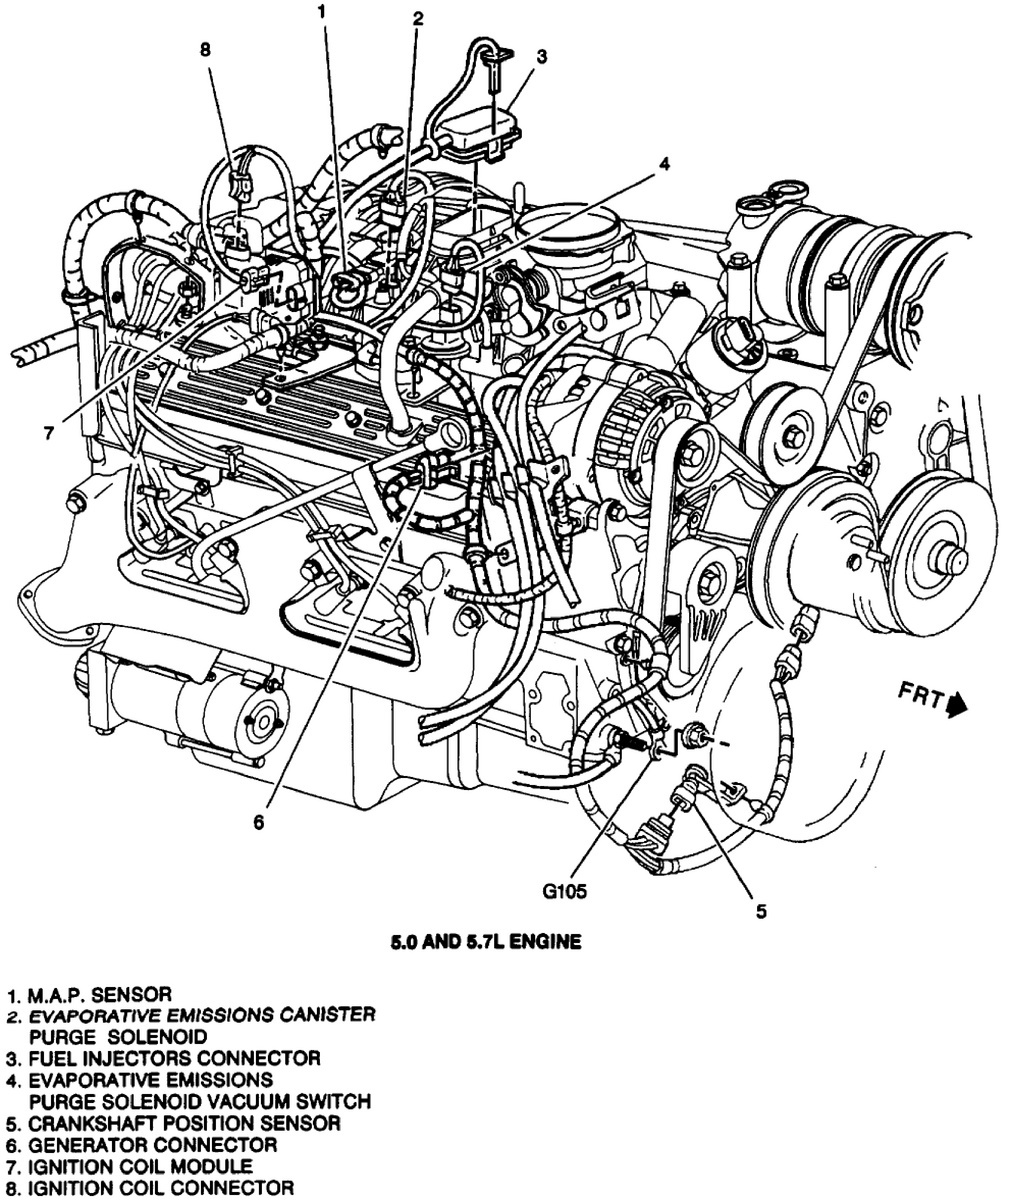 Gm 5 7 Engine Diagram - 2008 Toyota Tundra Window Wiring Diagram List Data  Schematicsantuariomadredelbuonconsiglio.it